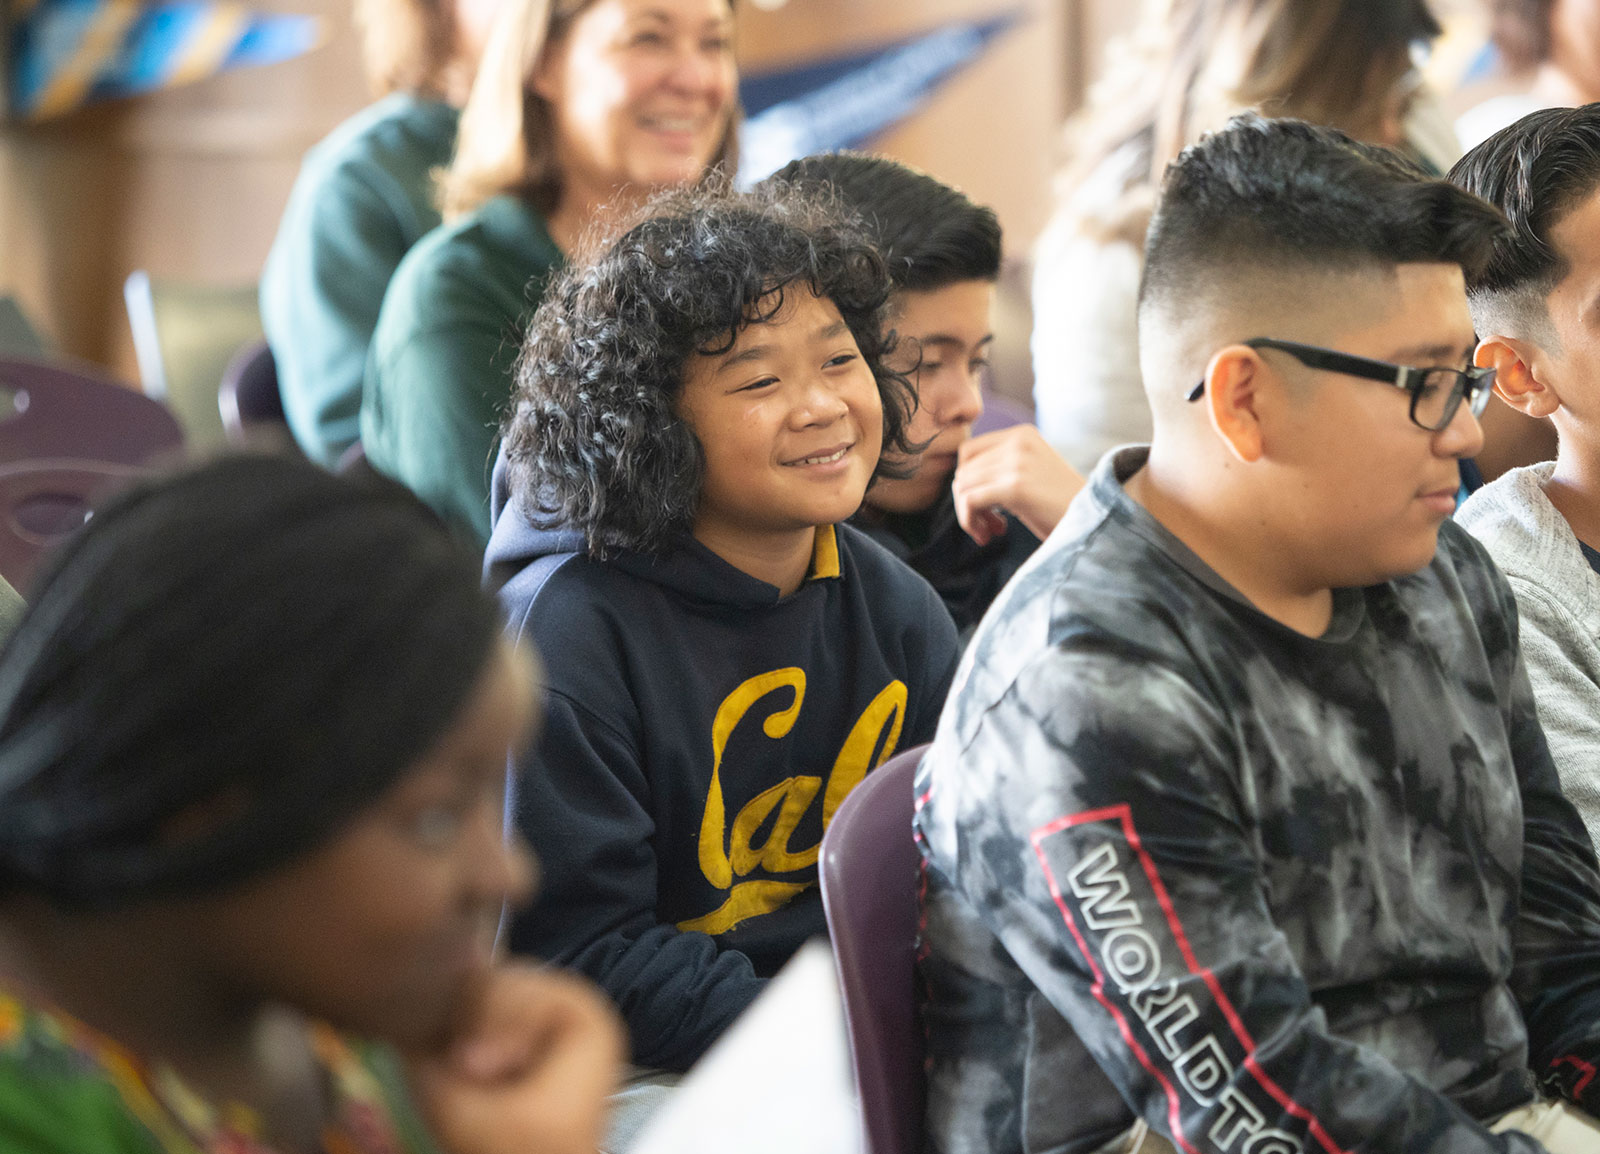 A middle school student listens to a college talk wearing a Cal sweatshirt